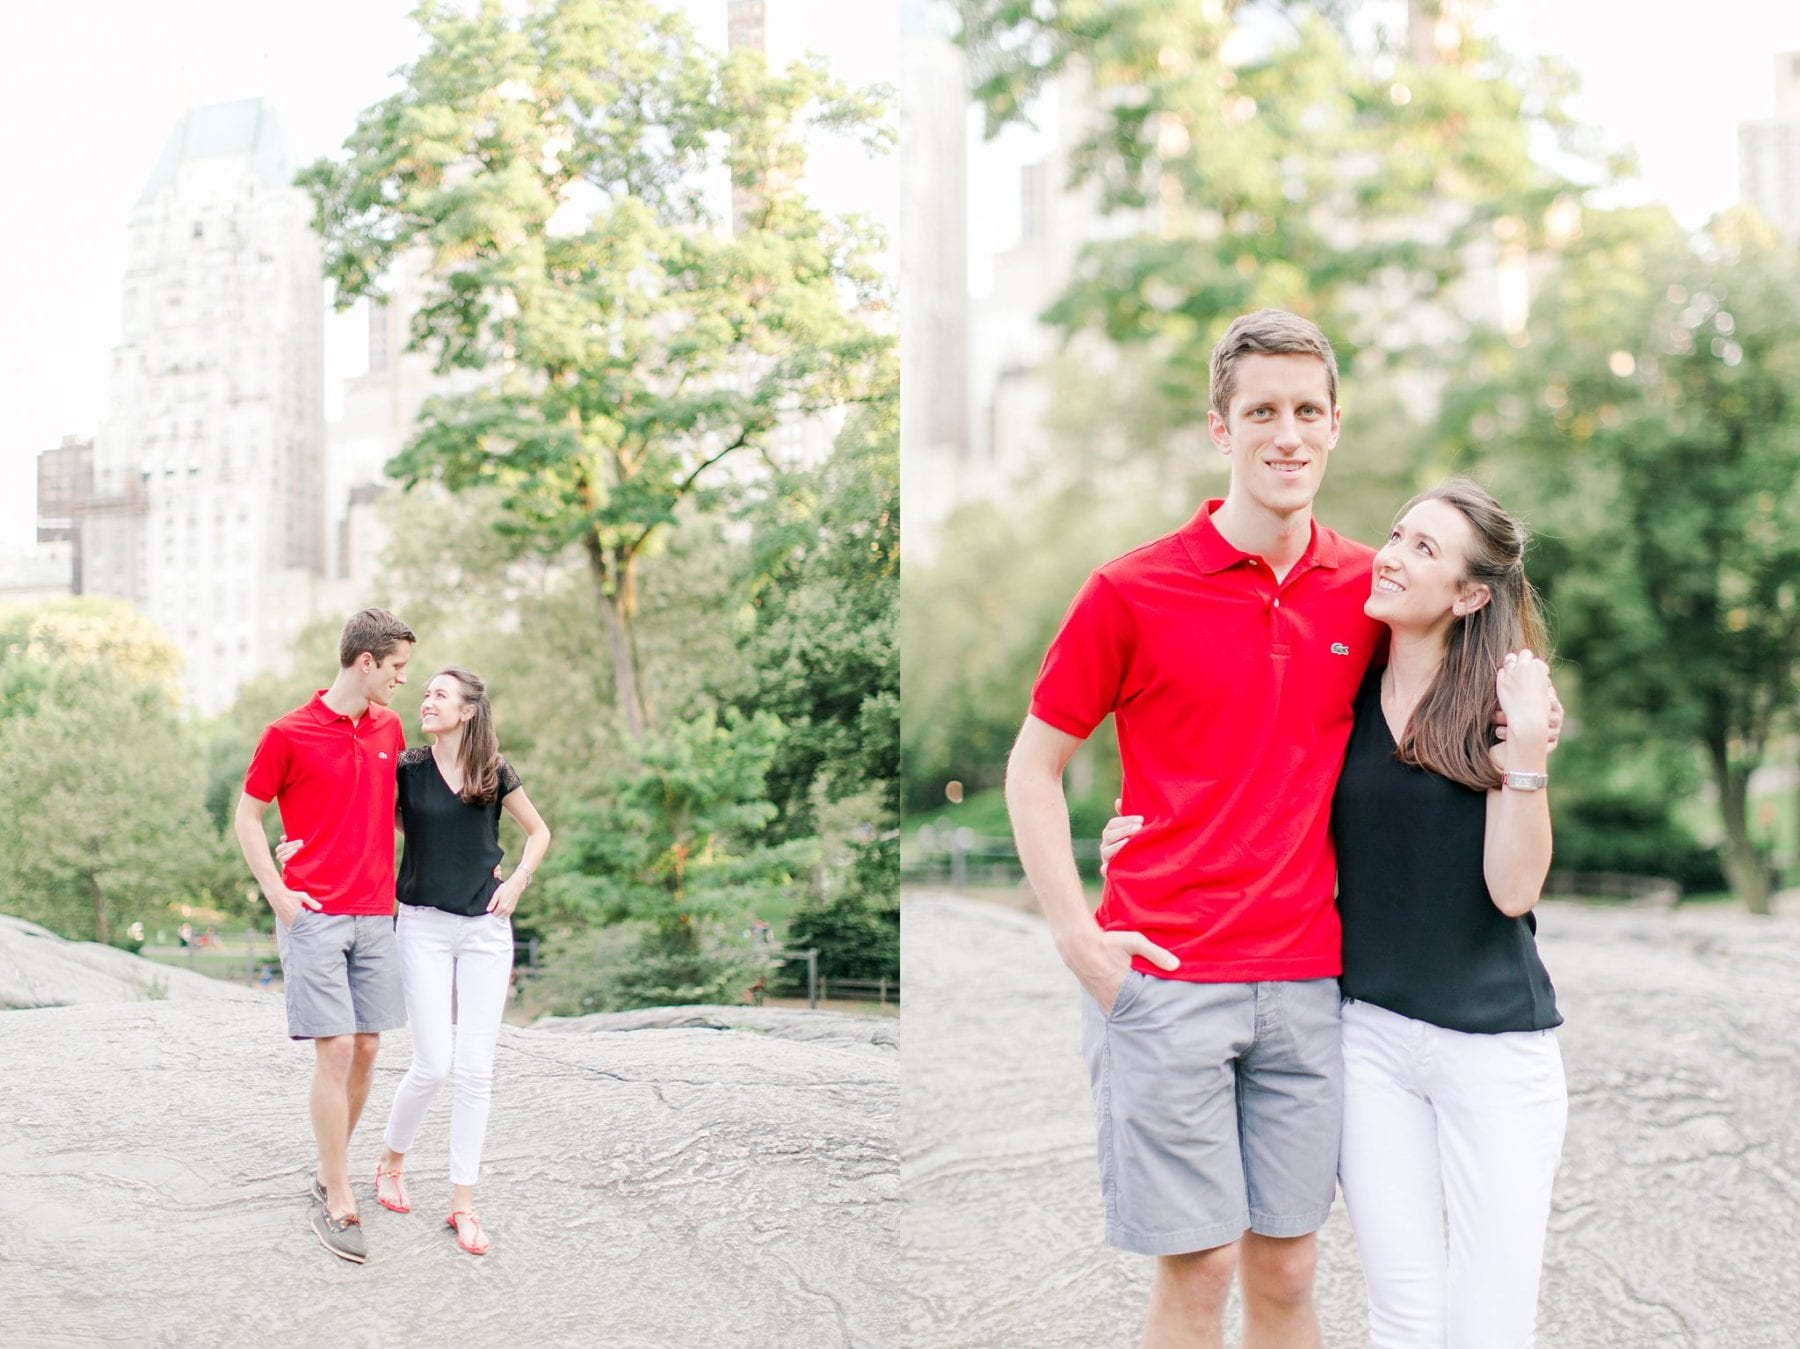 West Village Central Park Engagement Photos NYC Wedding Photographer Megan Kelsey Photography-186.jpg